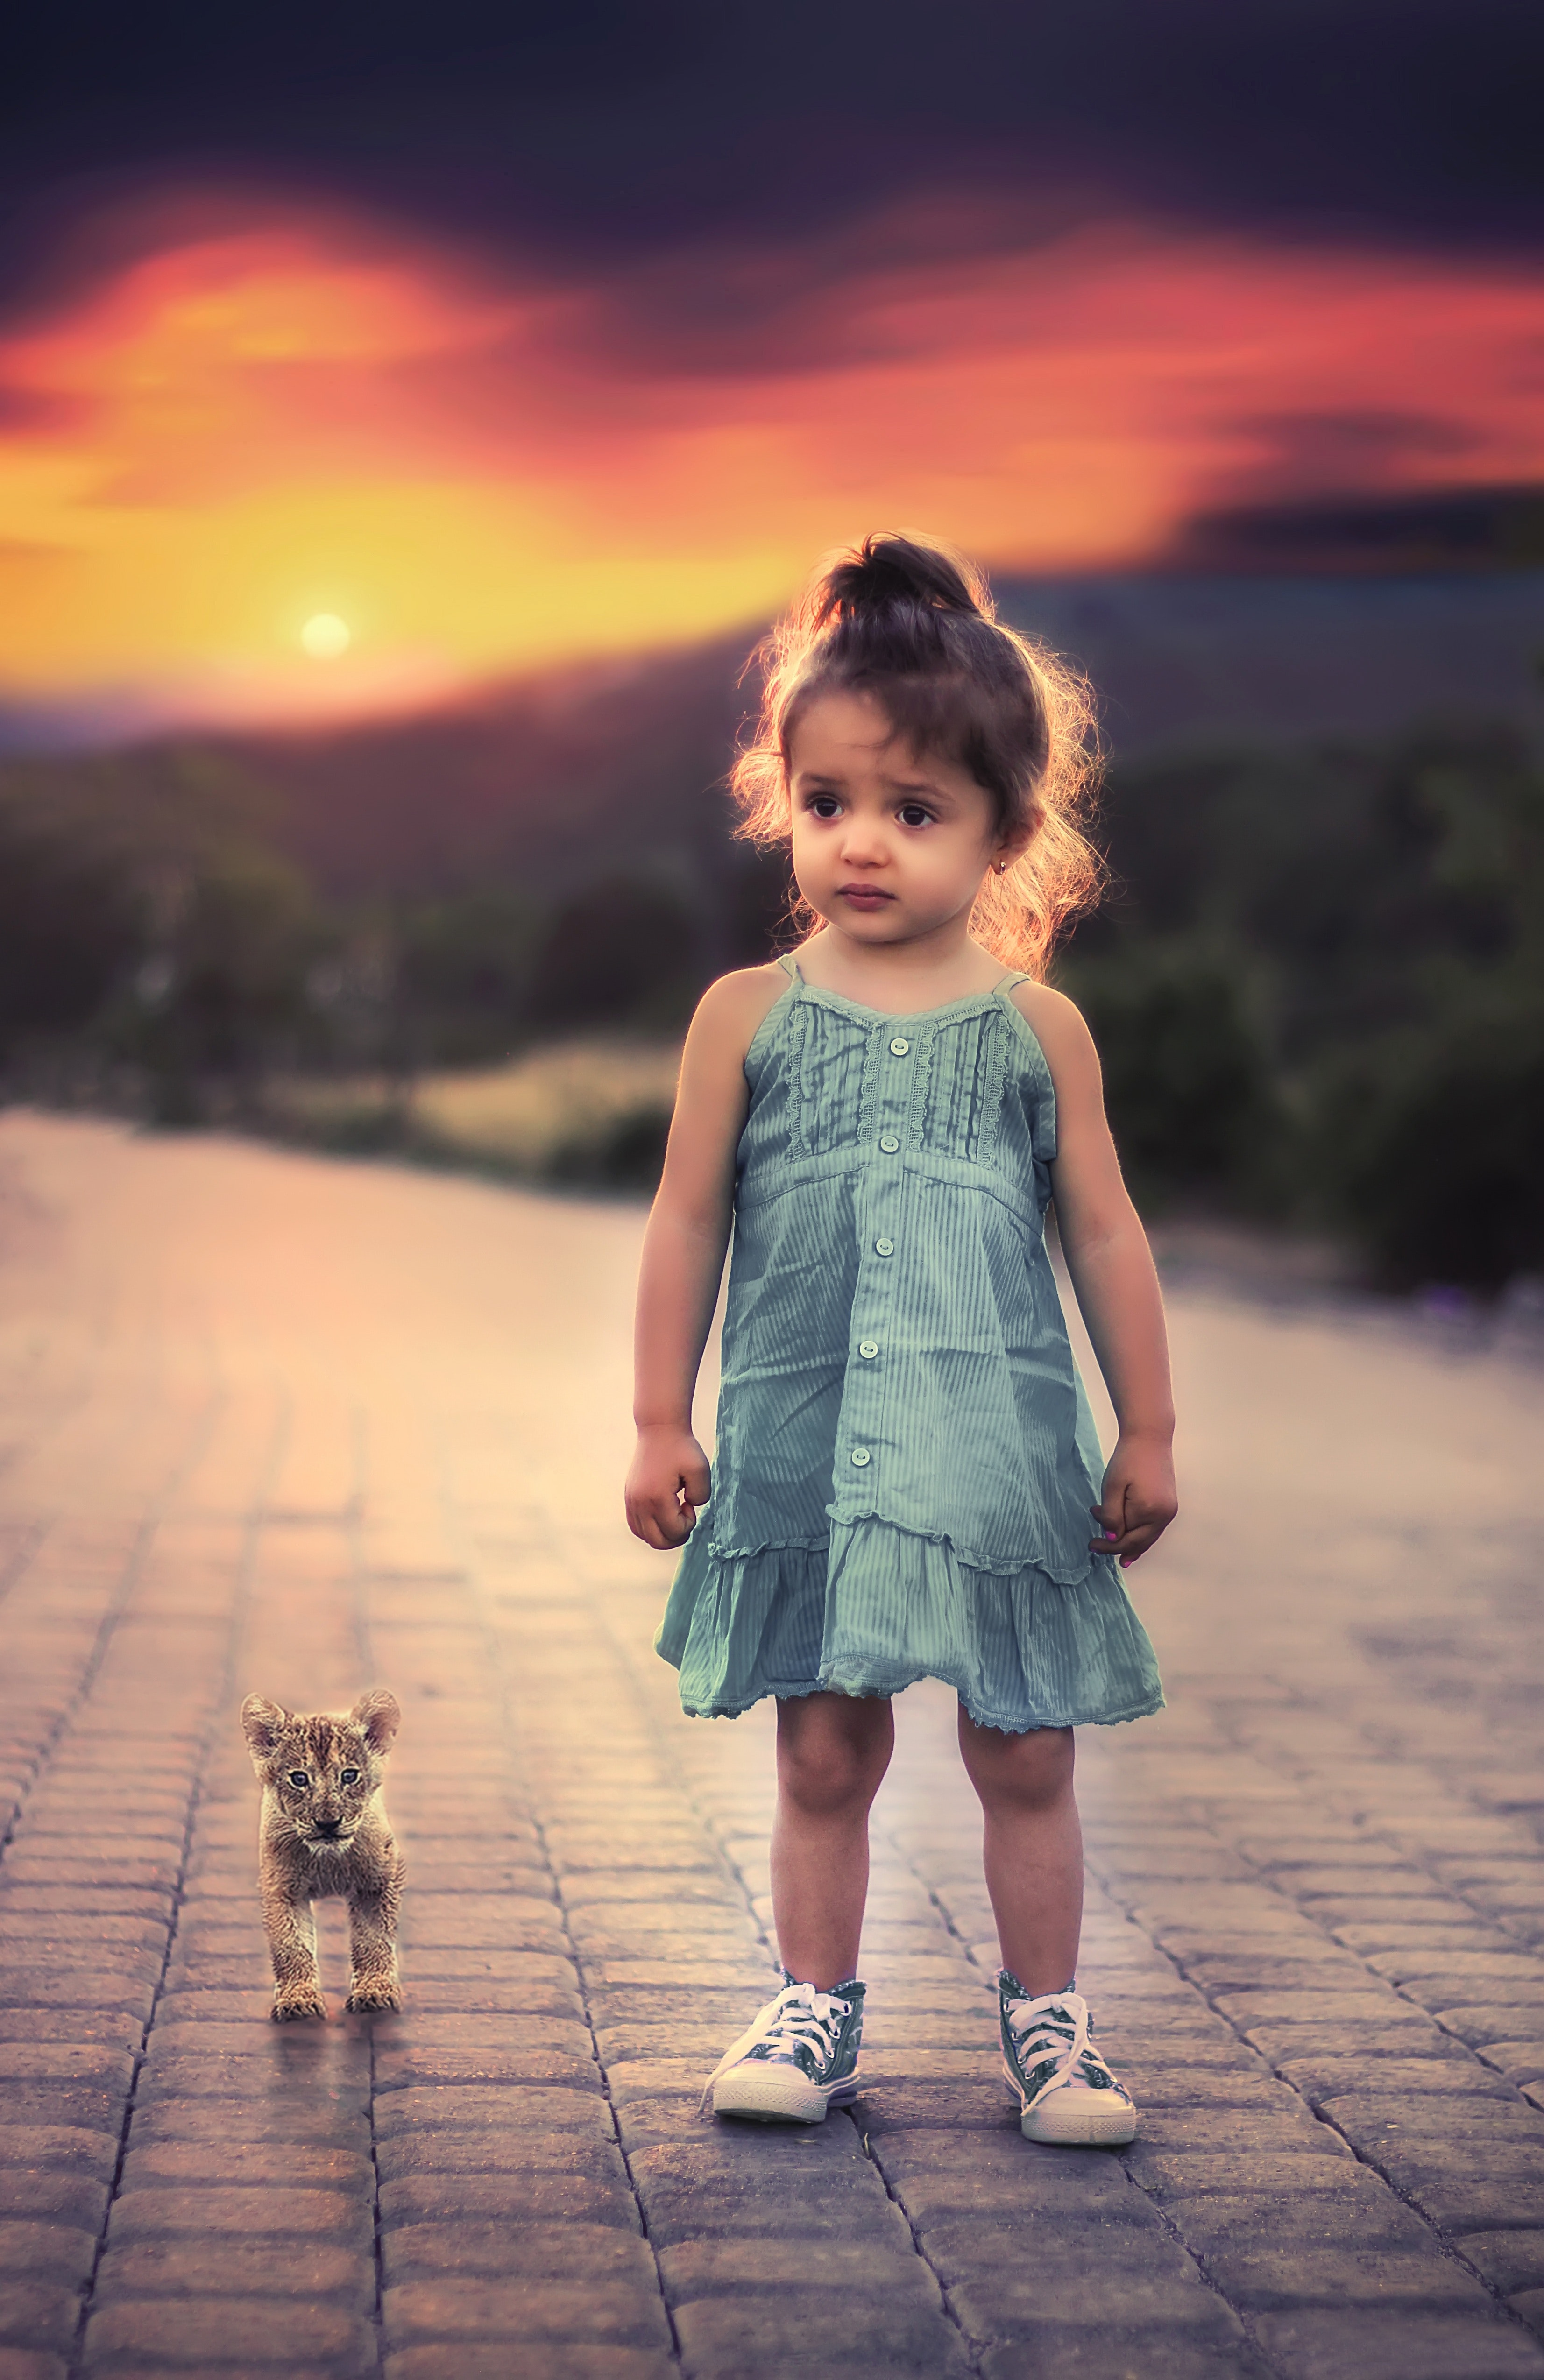 Toddler Girl Standing Beside Lion Cub Free Stock Photo